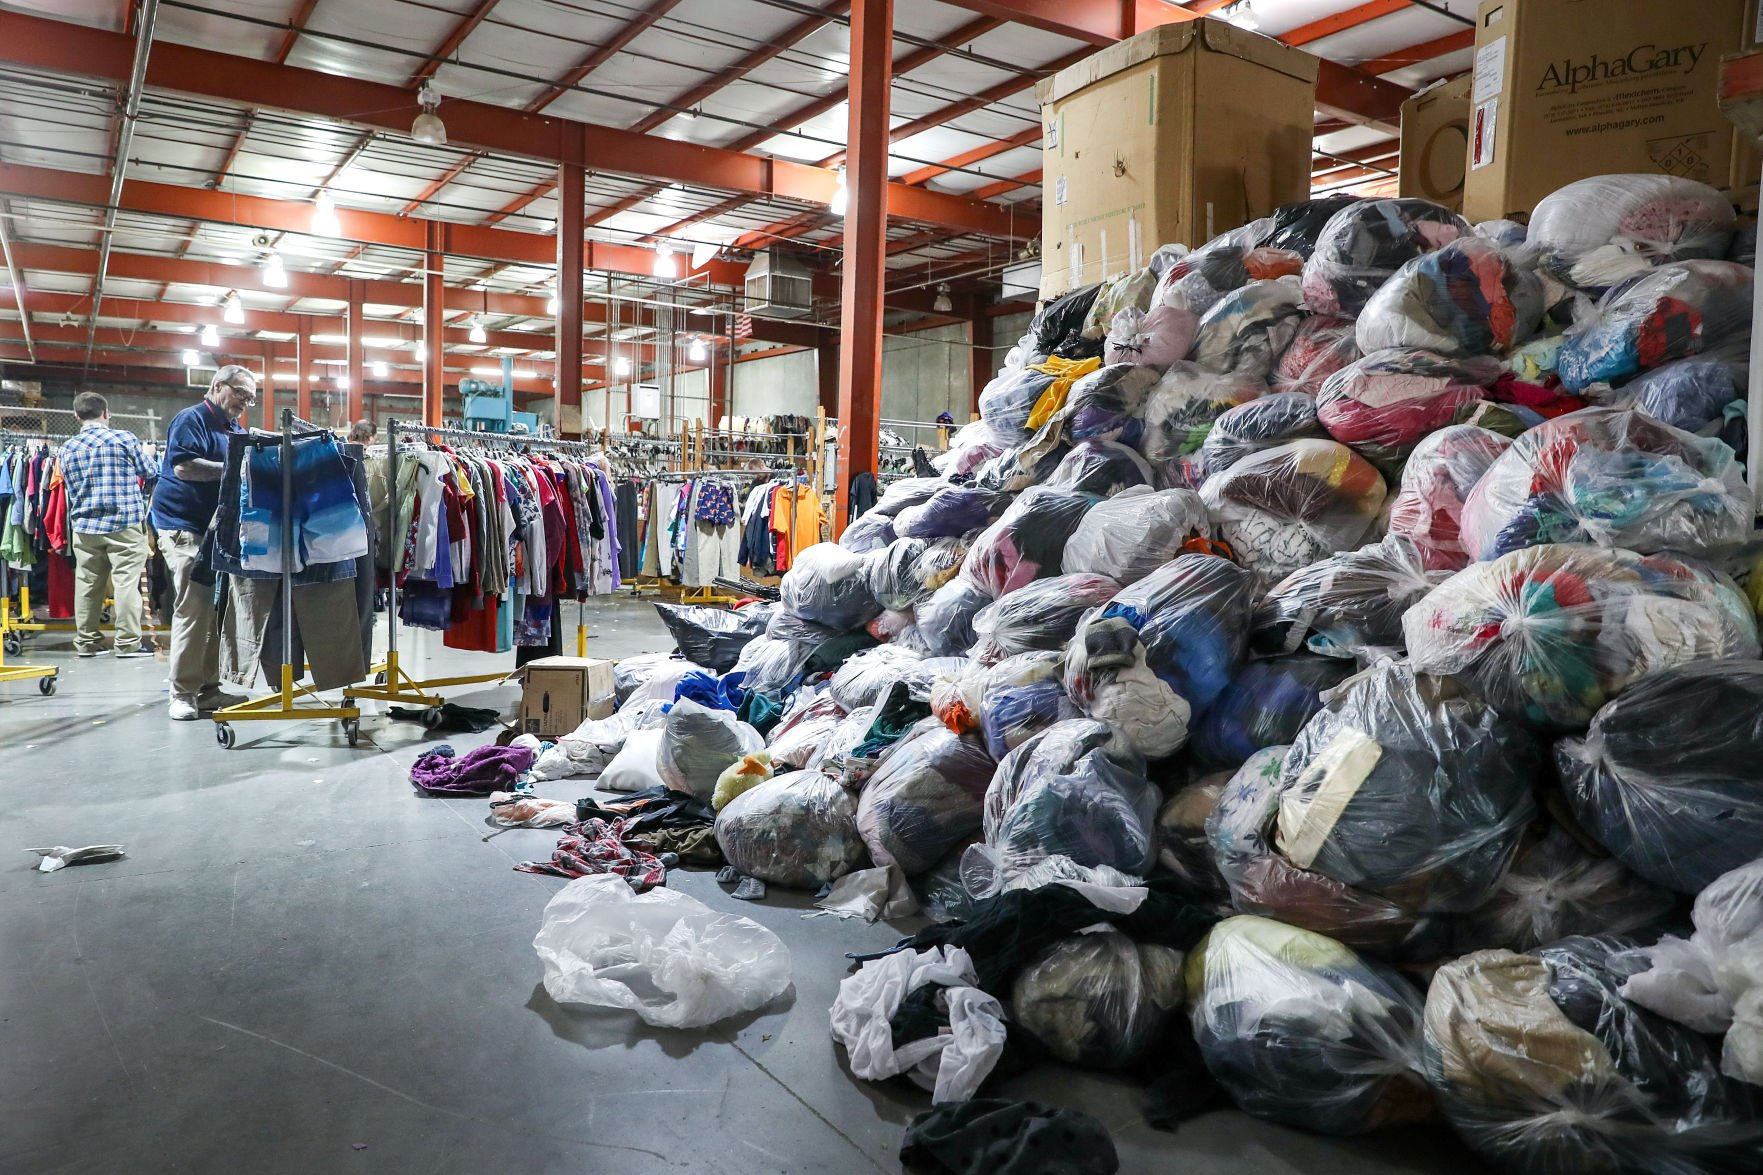 Goodwill donations Amid a decline in donations